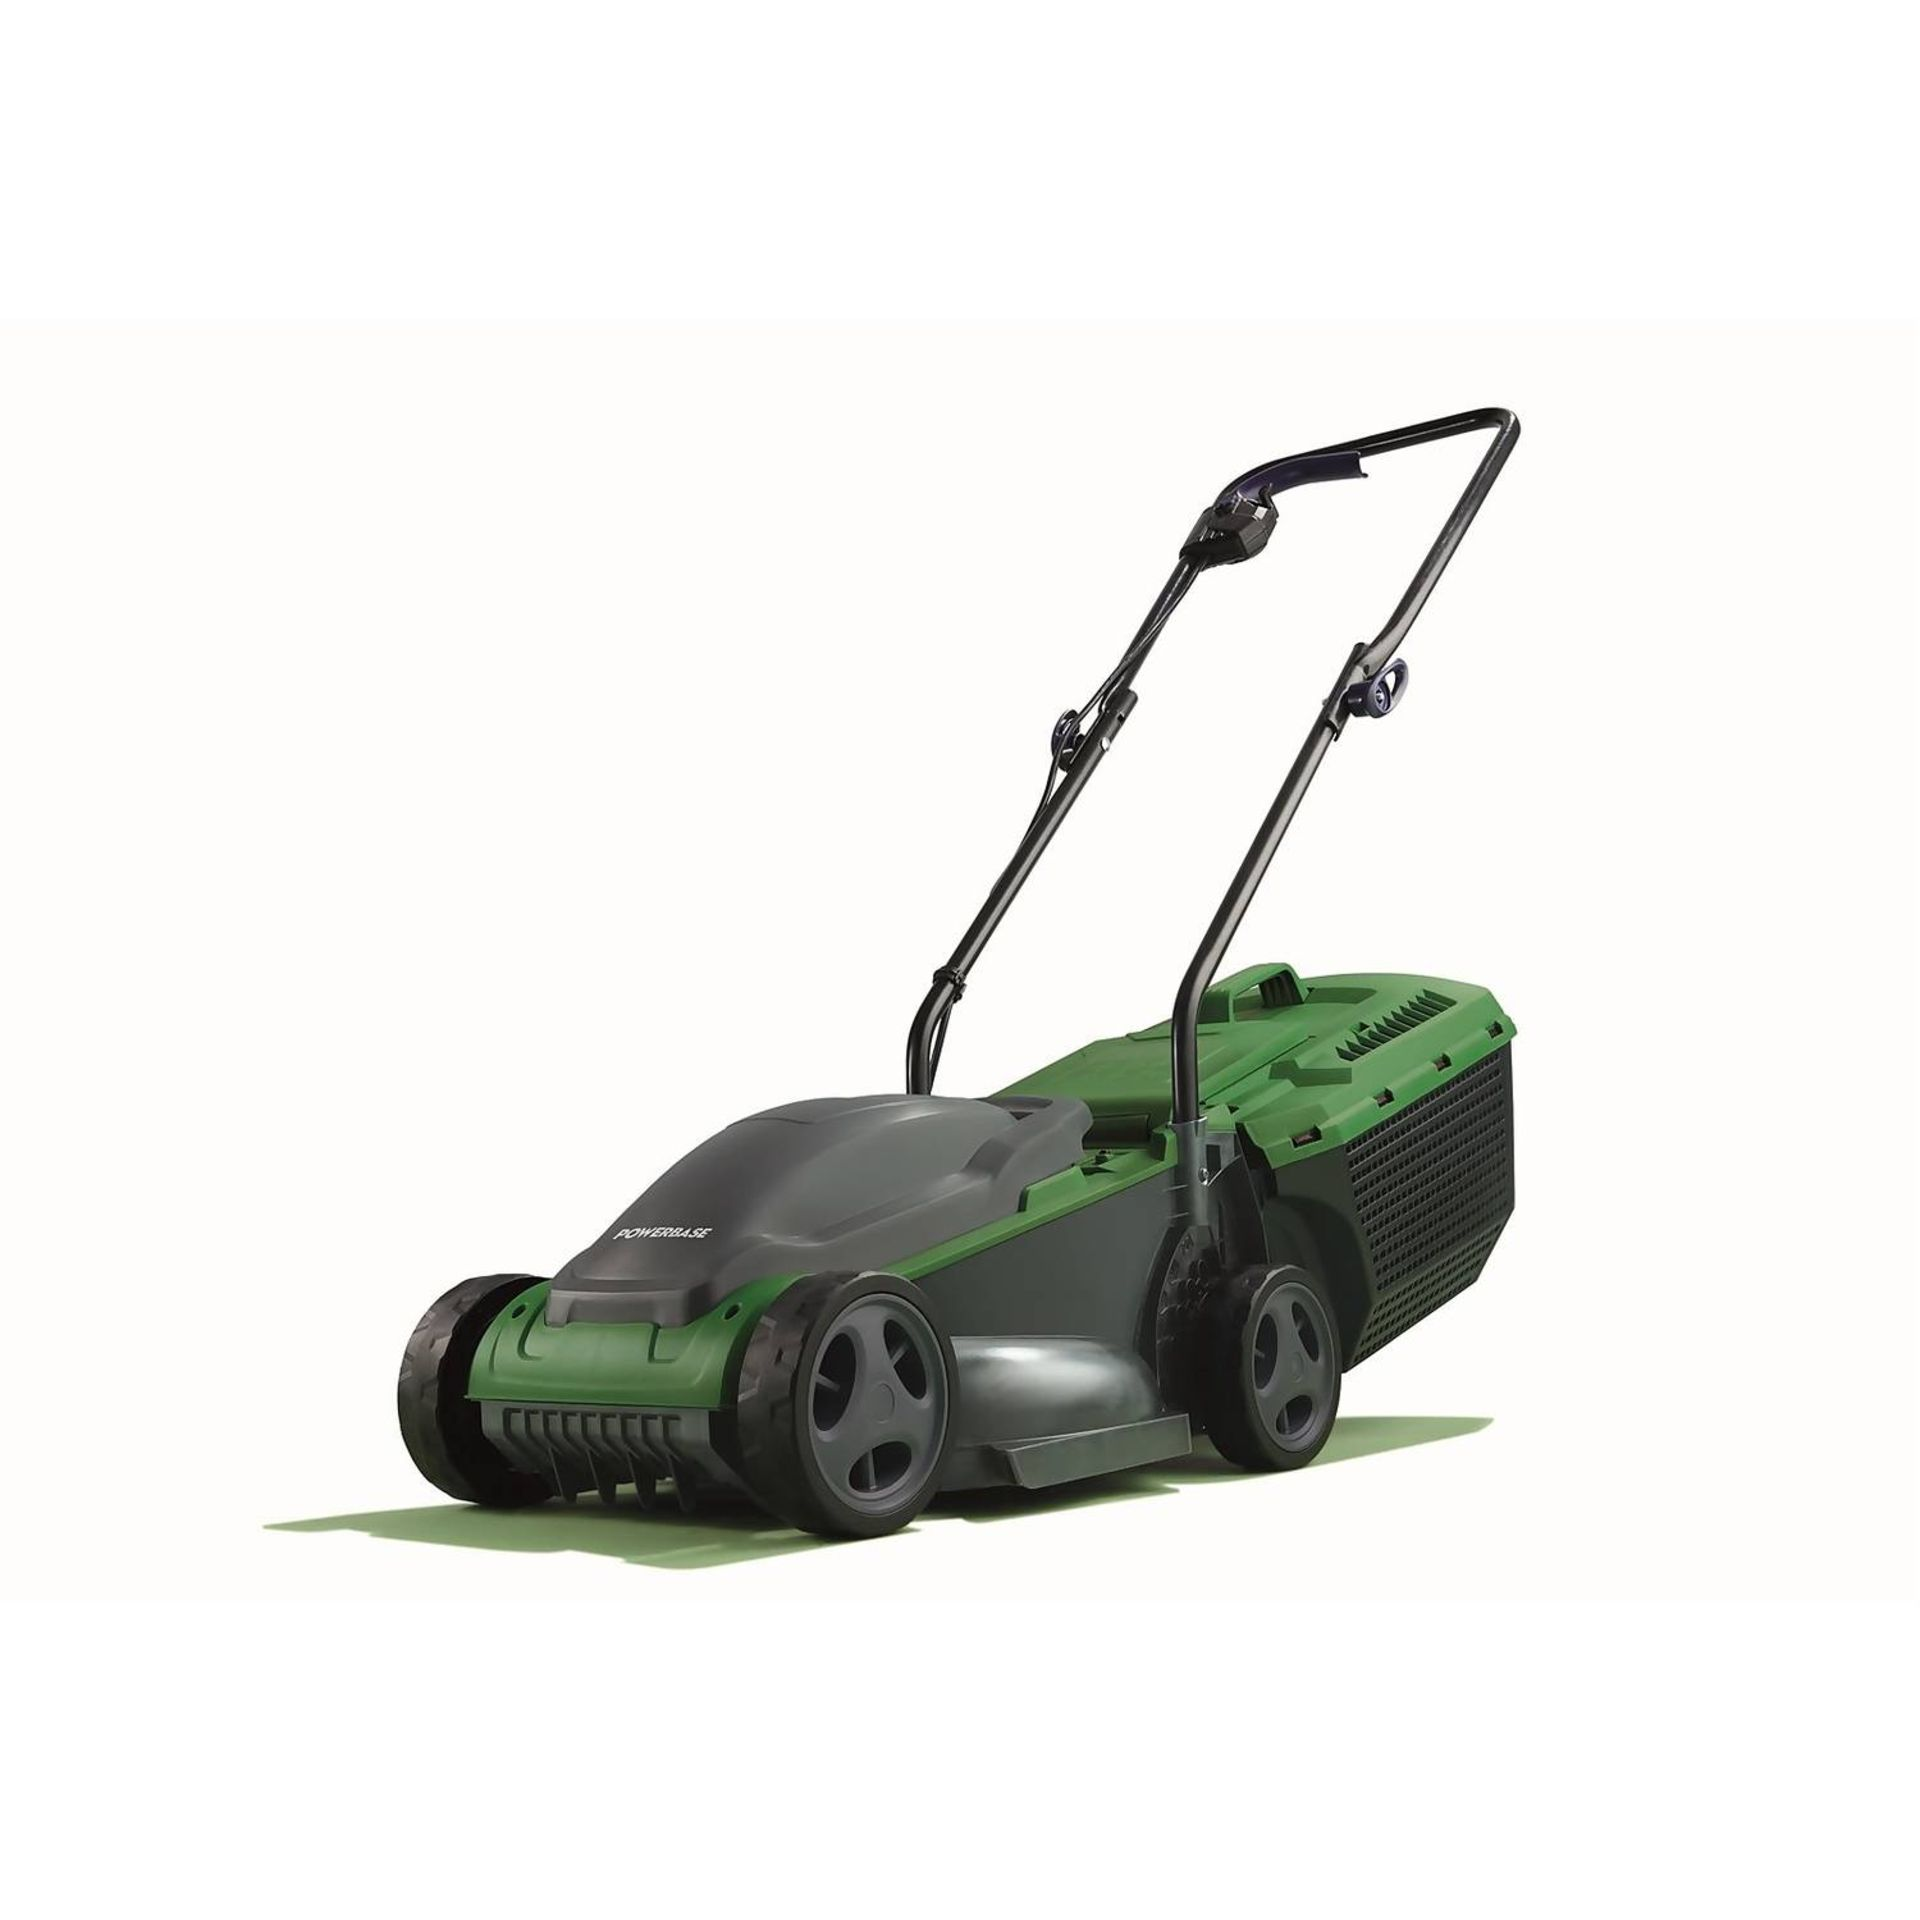 (P8) 1x Powerbase 32cm 1200W Electric Rotary Lawn Mower RRP £59. (Unit Appears Clean, Unused & As